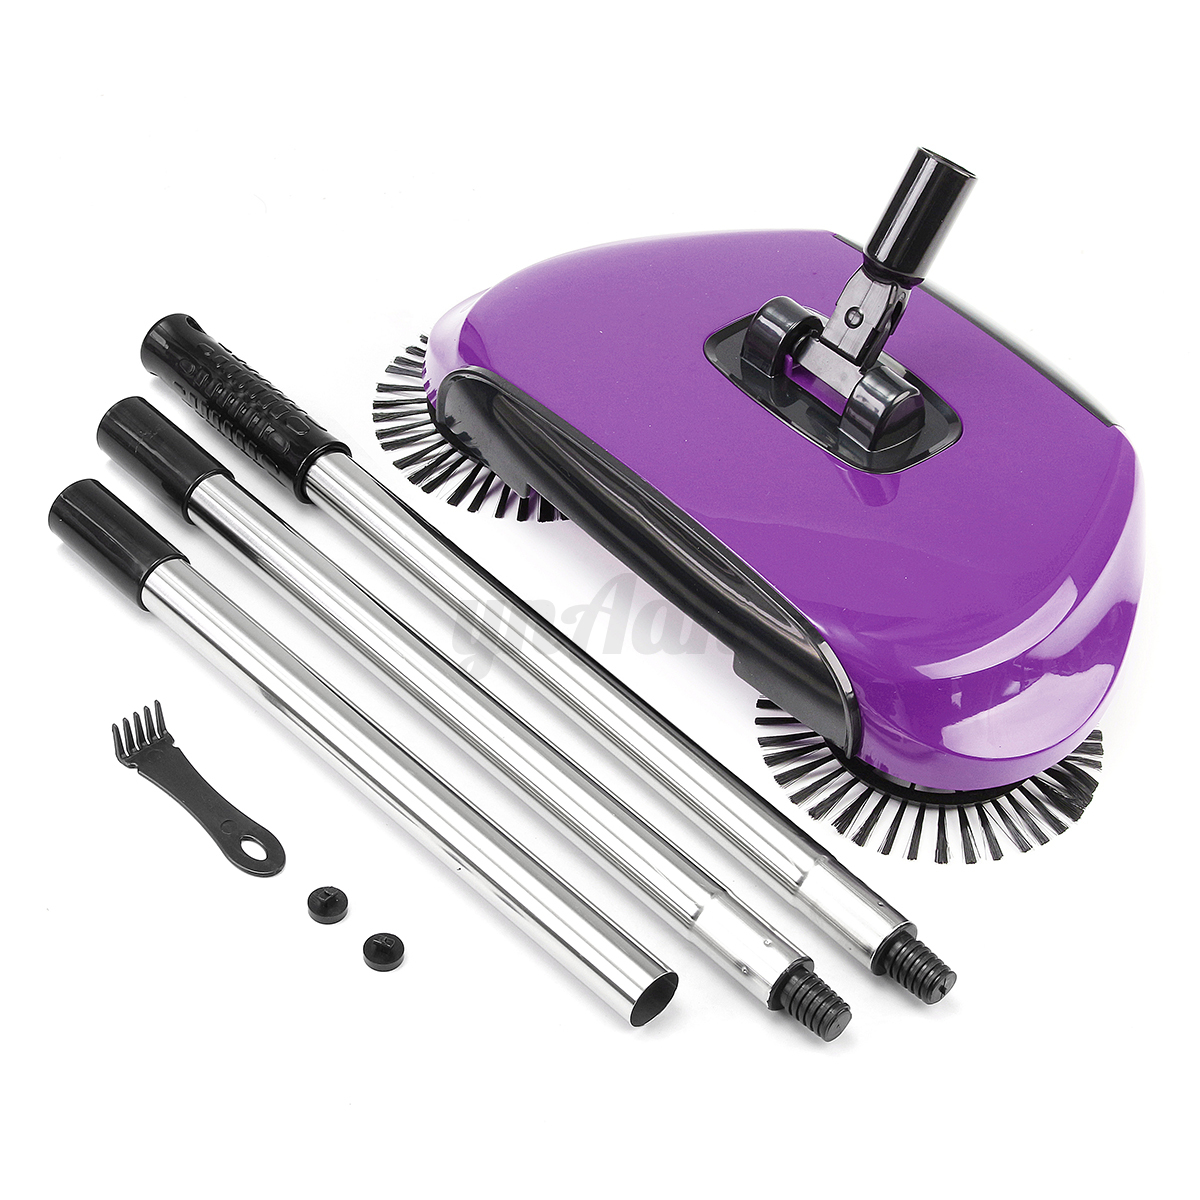 360-Automatic-Hand-Push-Cordless-Sweeper-Broom-Cleaner-Household-Cleaning-Floor